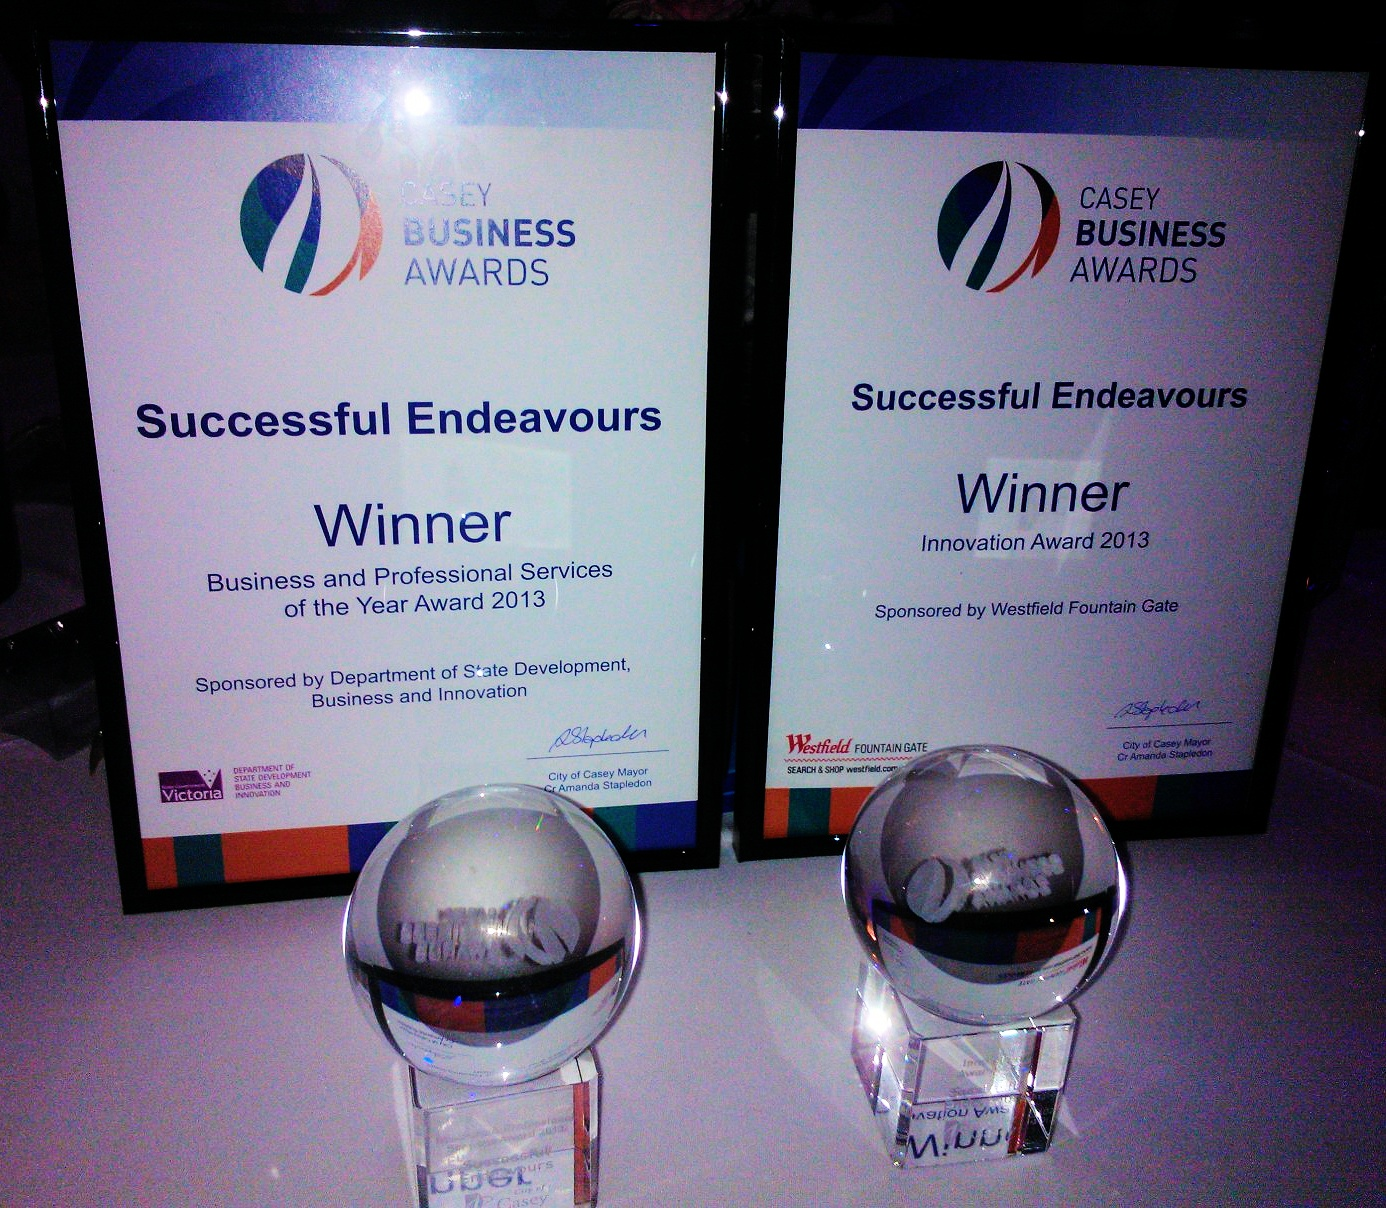 Casey Business Awards Winners 2013